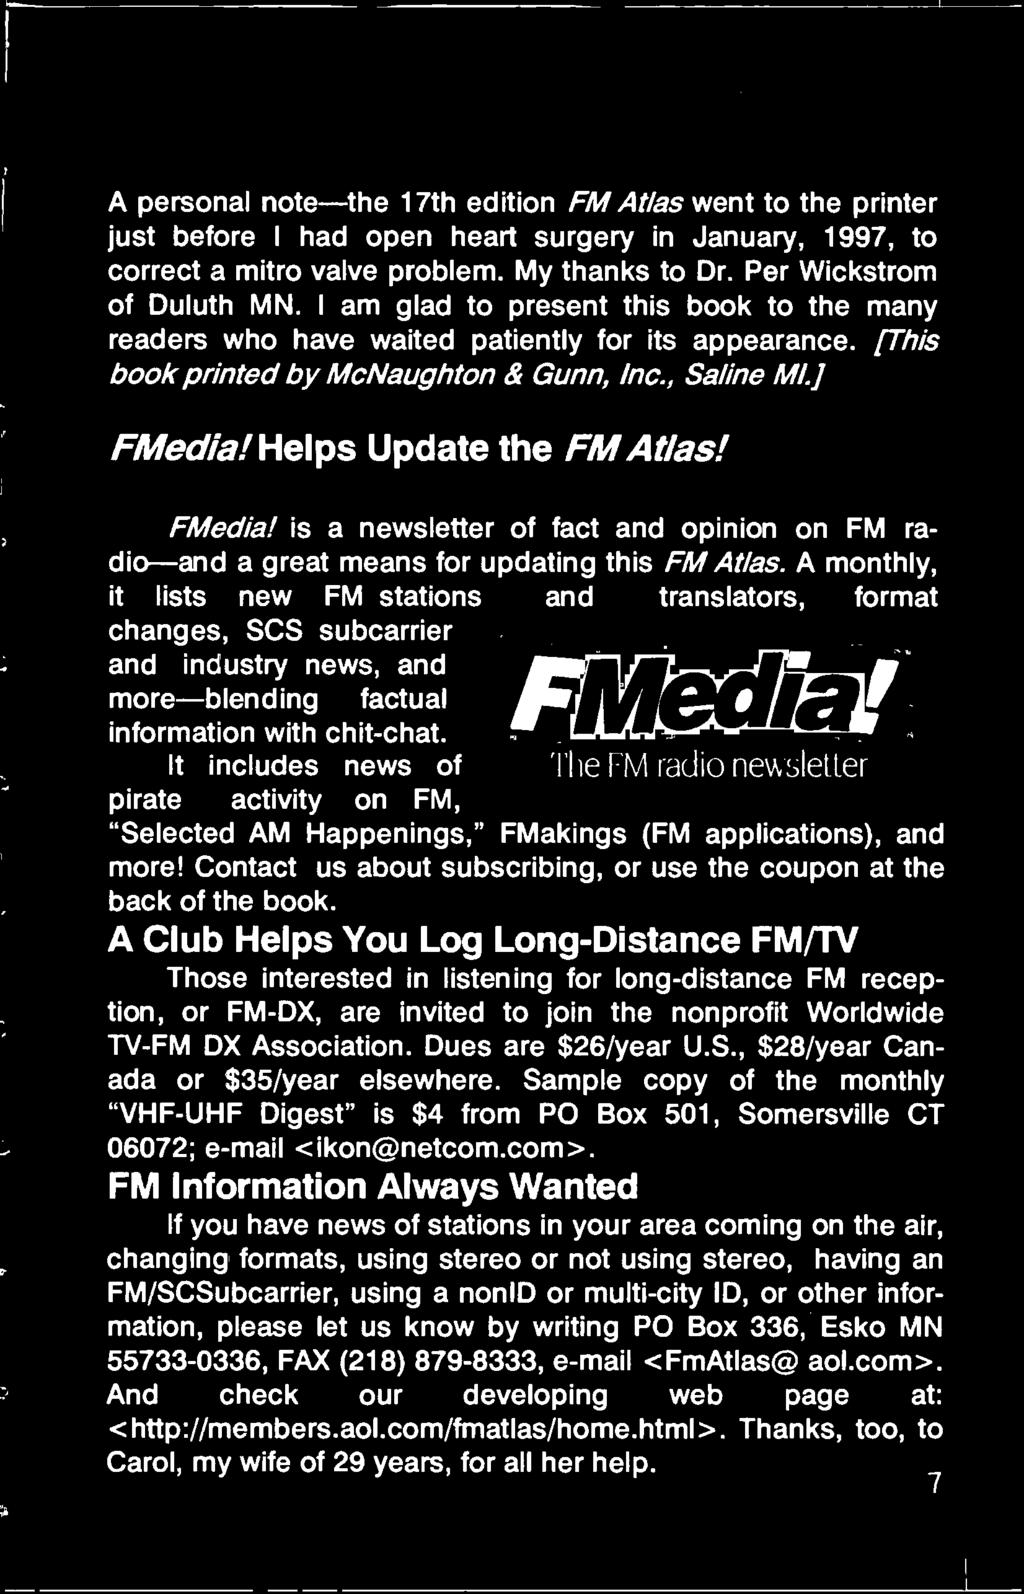 Helps Update the FM Atlas! FMedia! is a newsletter of fact and opinion on FM radio-and a great means for updating this FM Atlas.